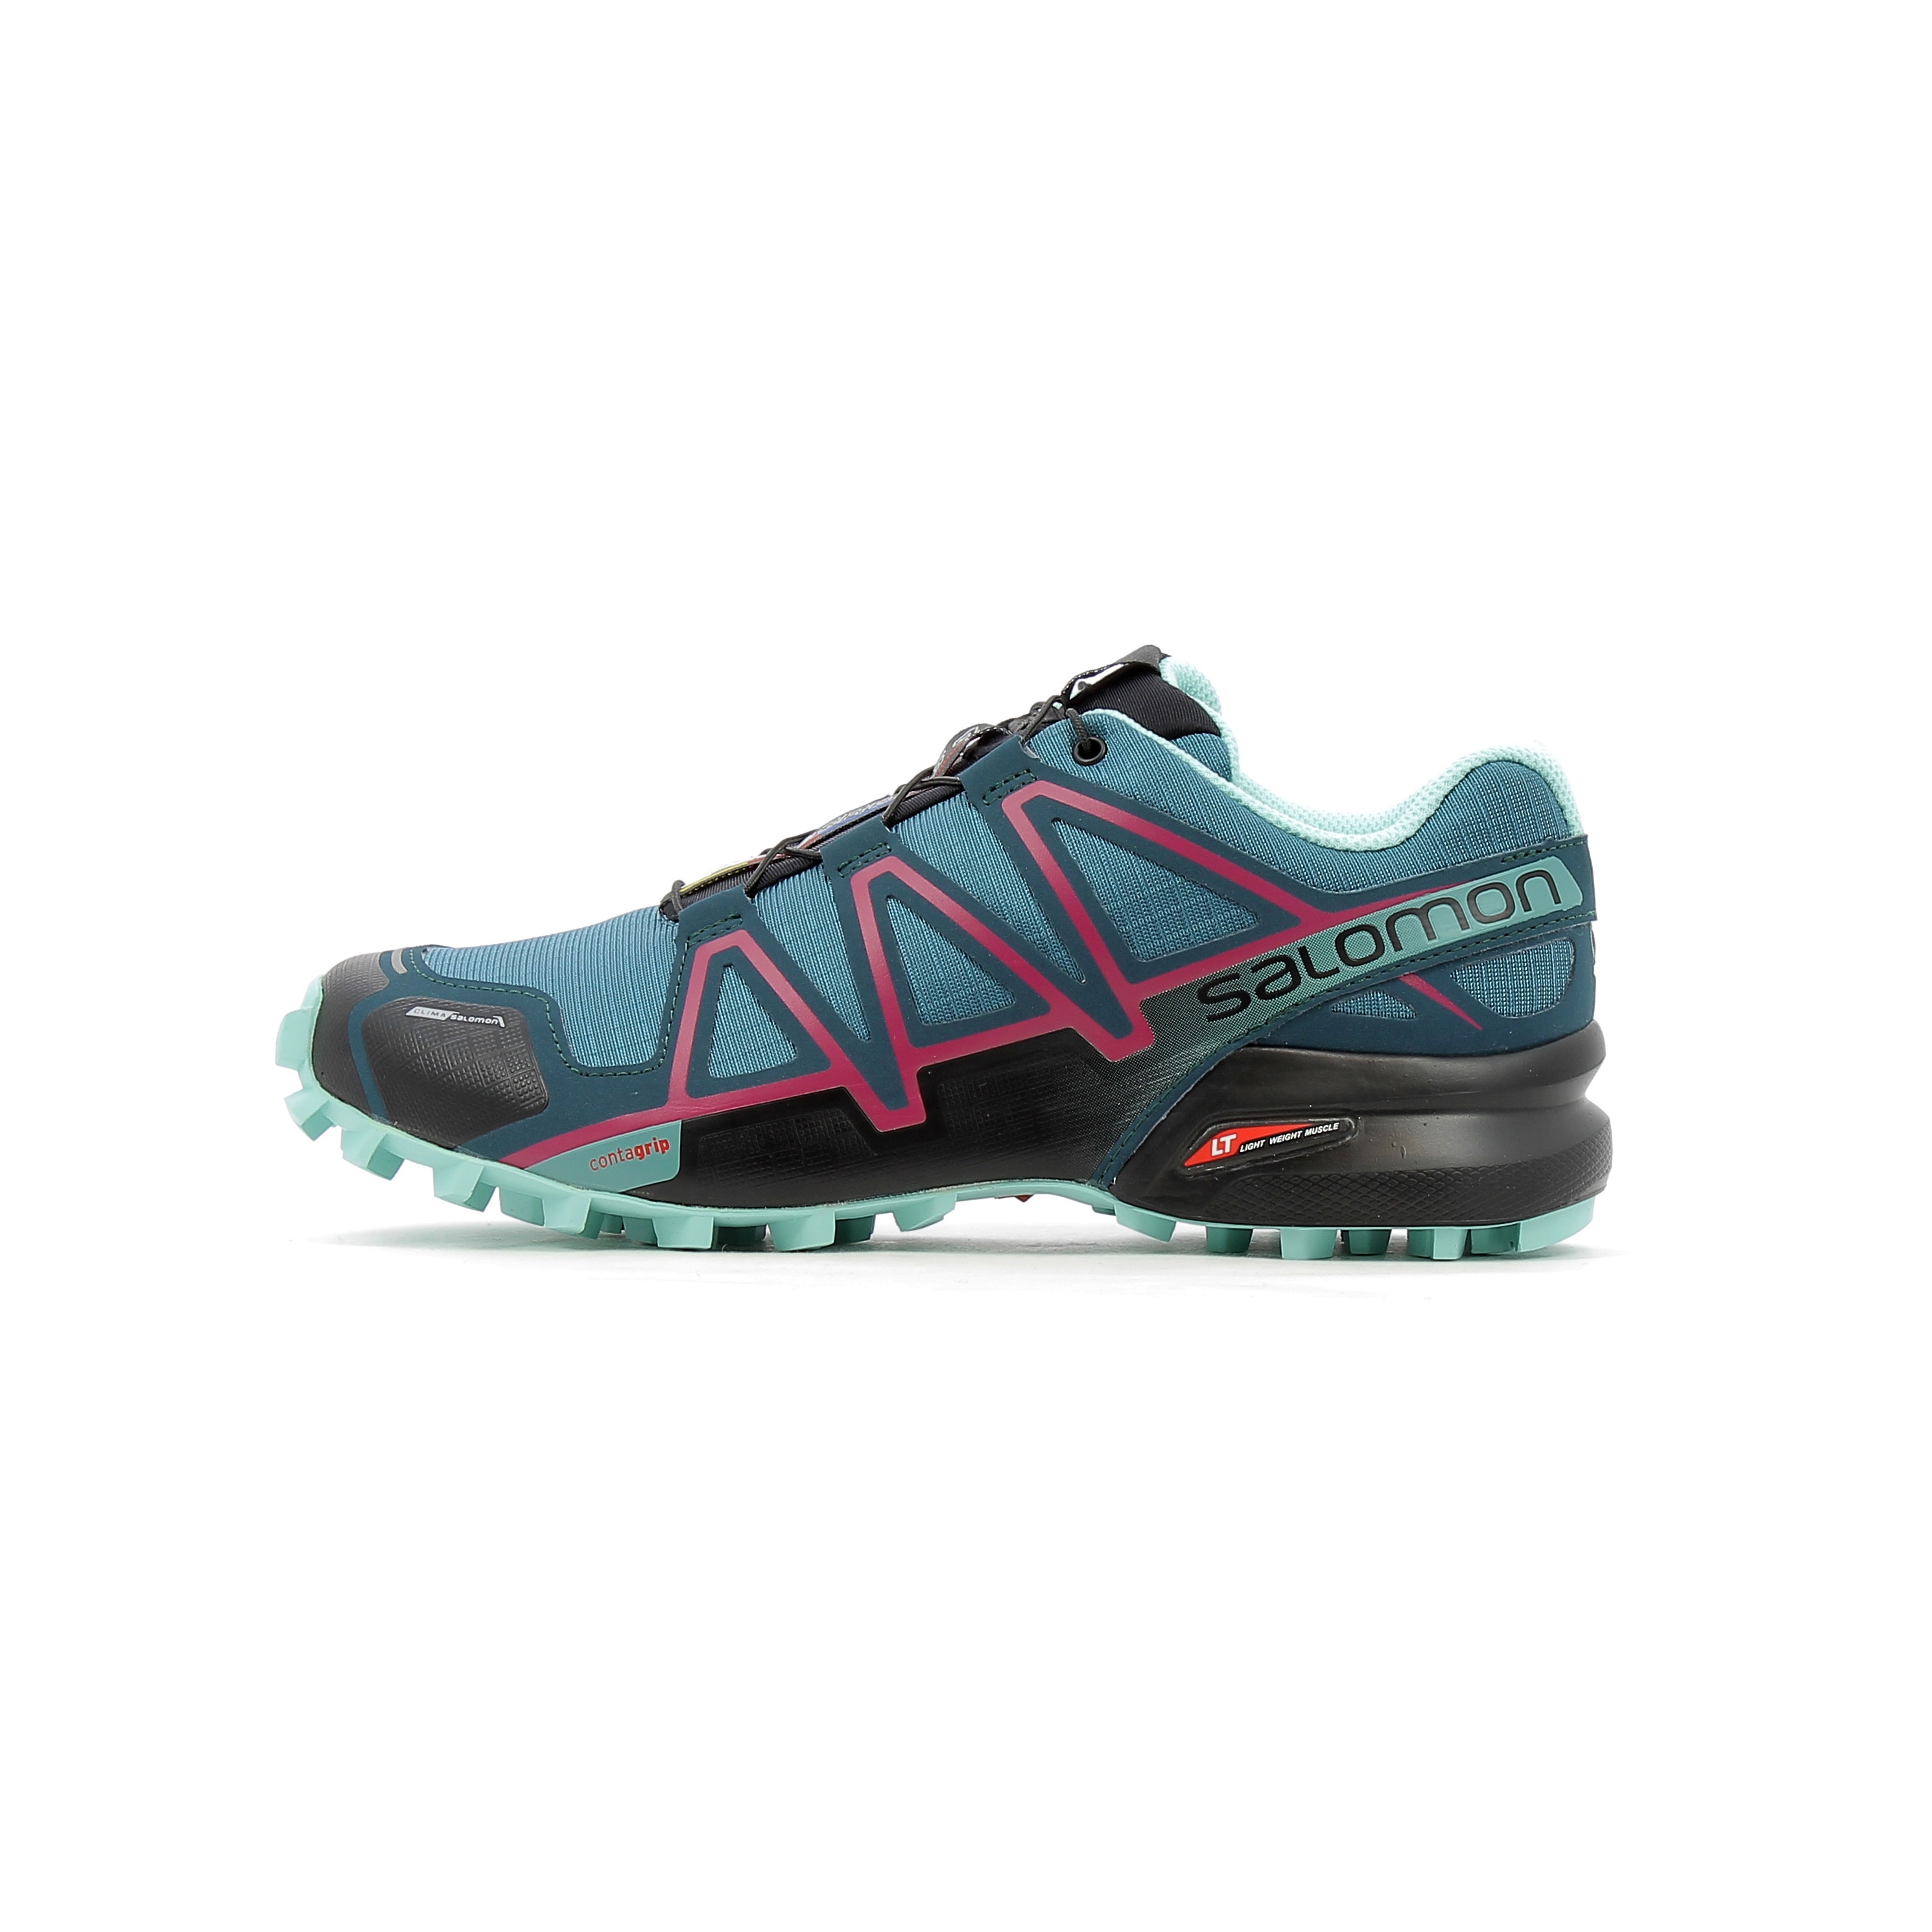 Chaussure de Trail femme Salomon Speedcross 4 CS Women